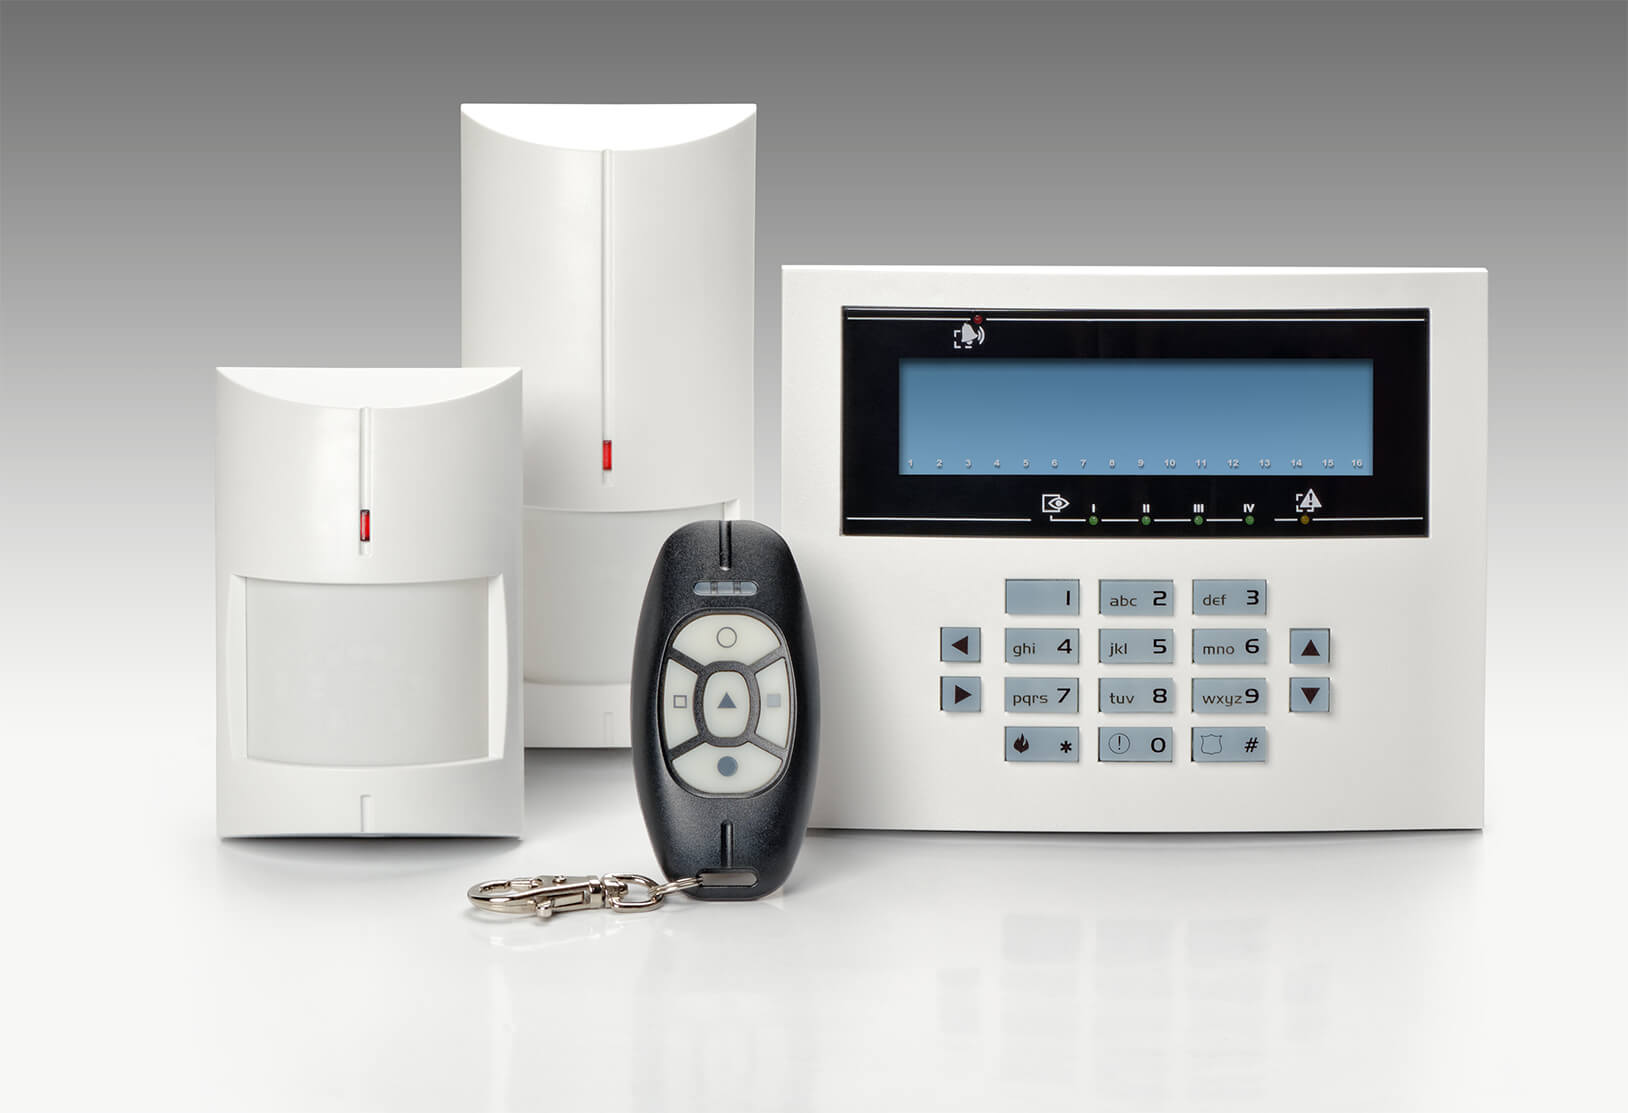 Commercial Burglar Alarms For Business in Acton W3  - Local Acton W3 burglar alarm company.Call 02078872244 - Dedicated to Safety & Security. Companies, shops and homes ..